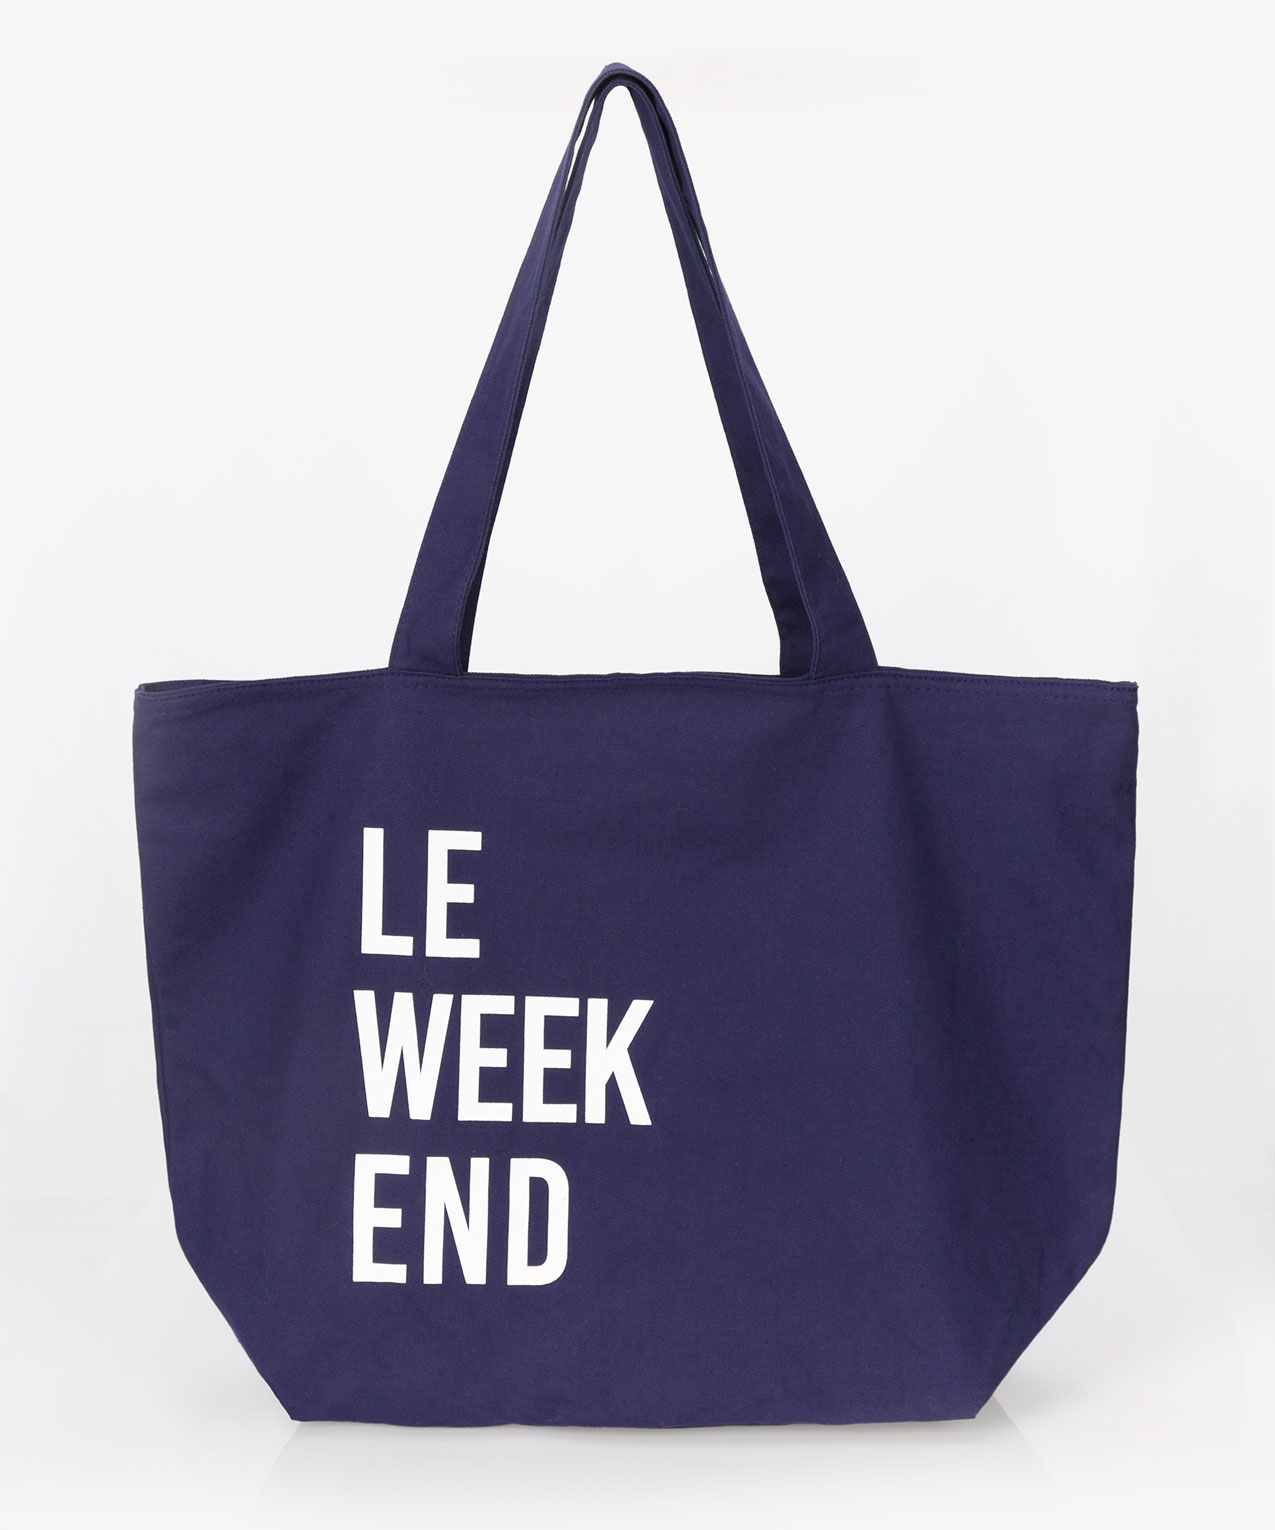 Le Weekend Canvas Tote Bag, Mid Blue/White, hi-res